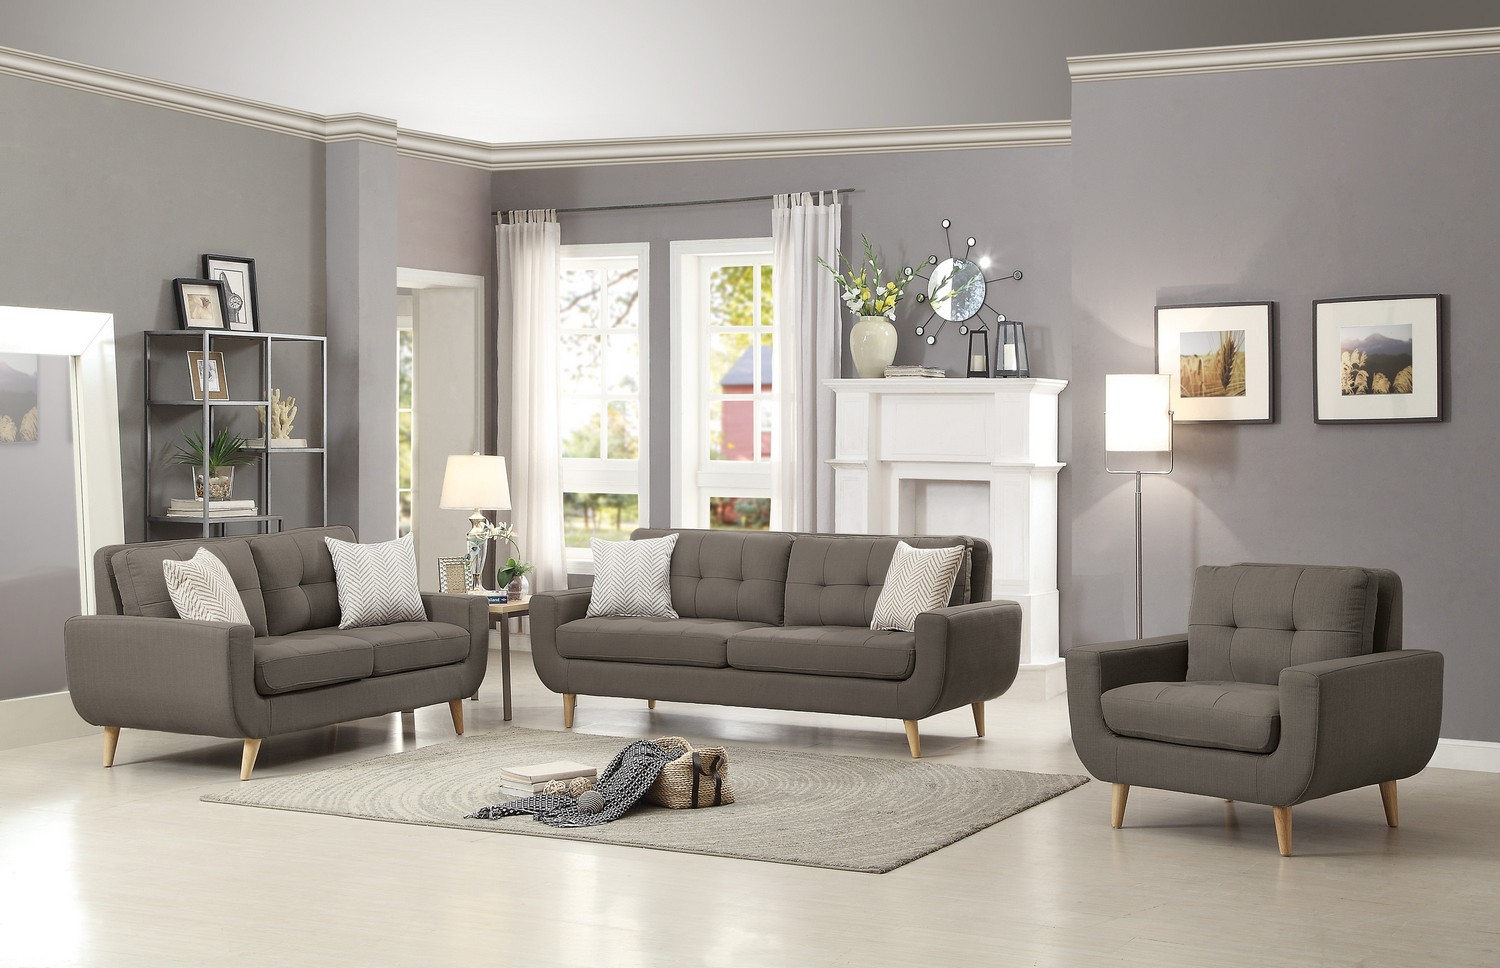 Homelegance Deryn Sofa Set - Polyester - Grey